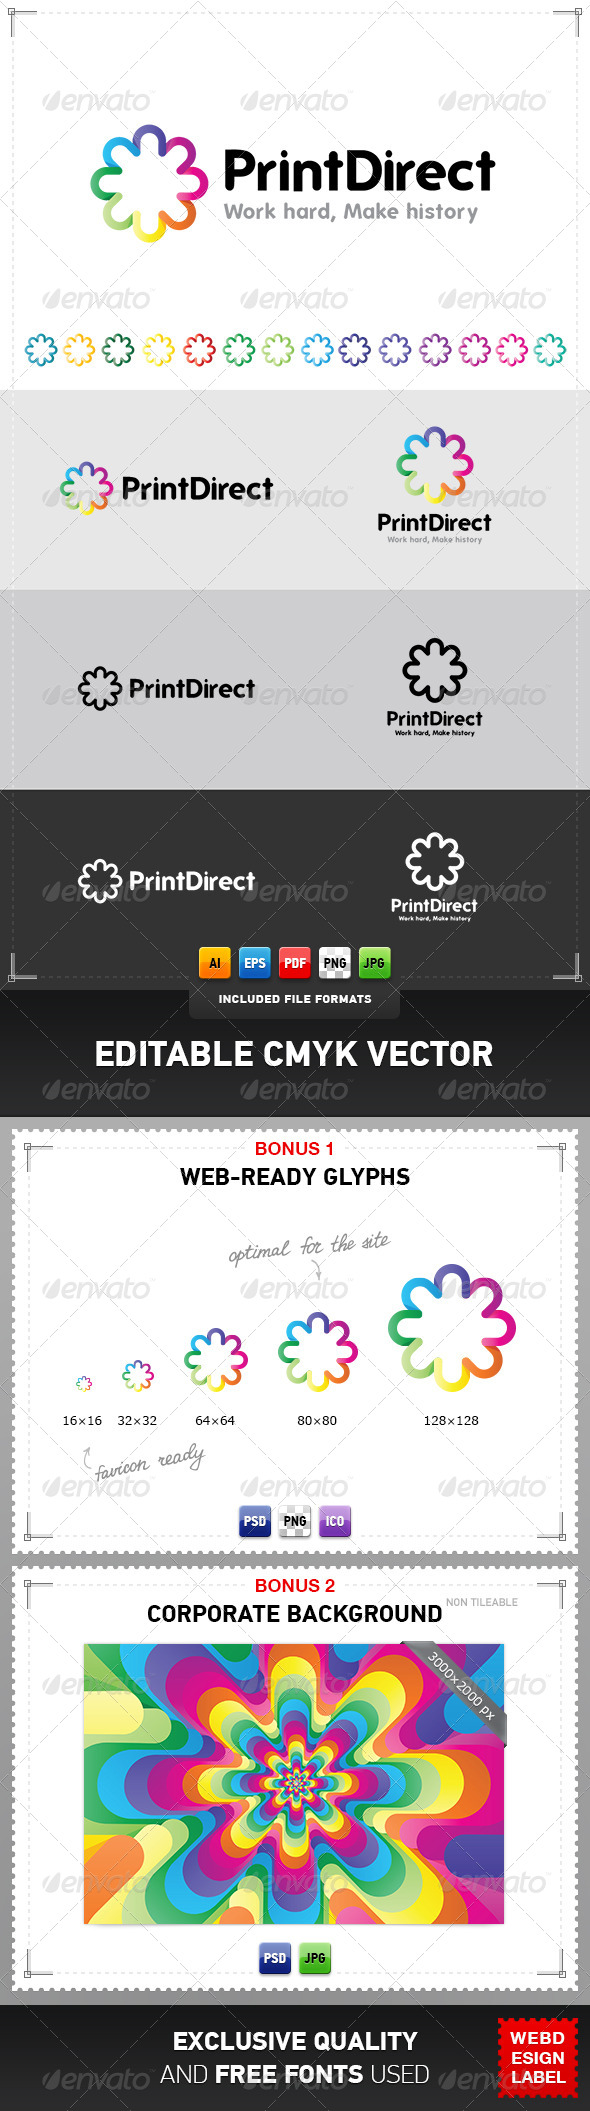 GraphicRiver Print Direct Logo 4077276